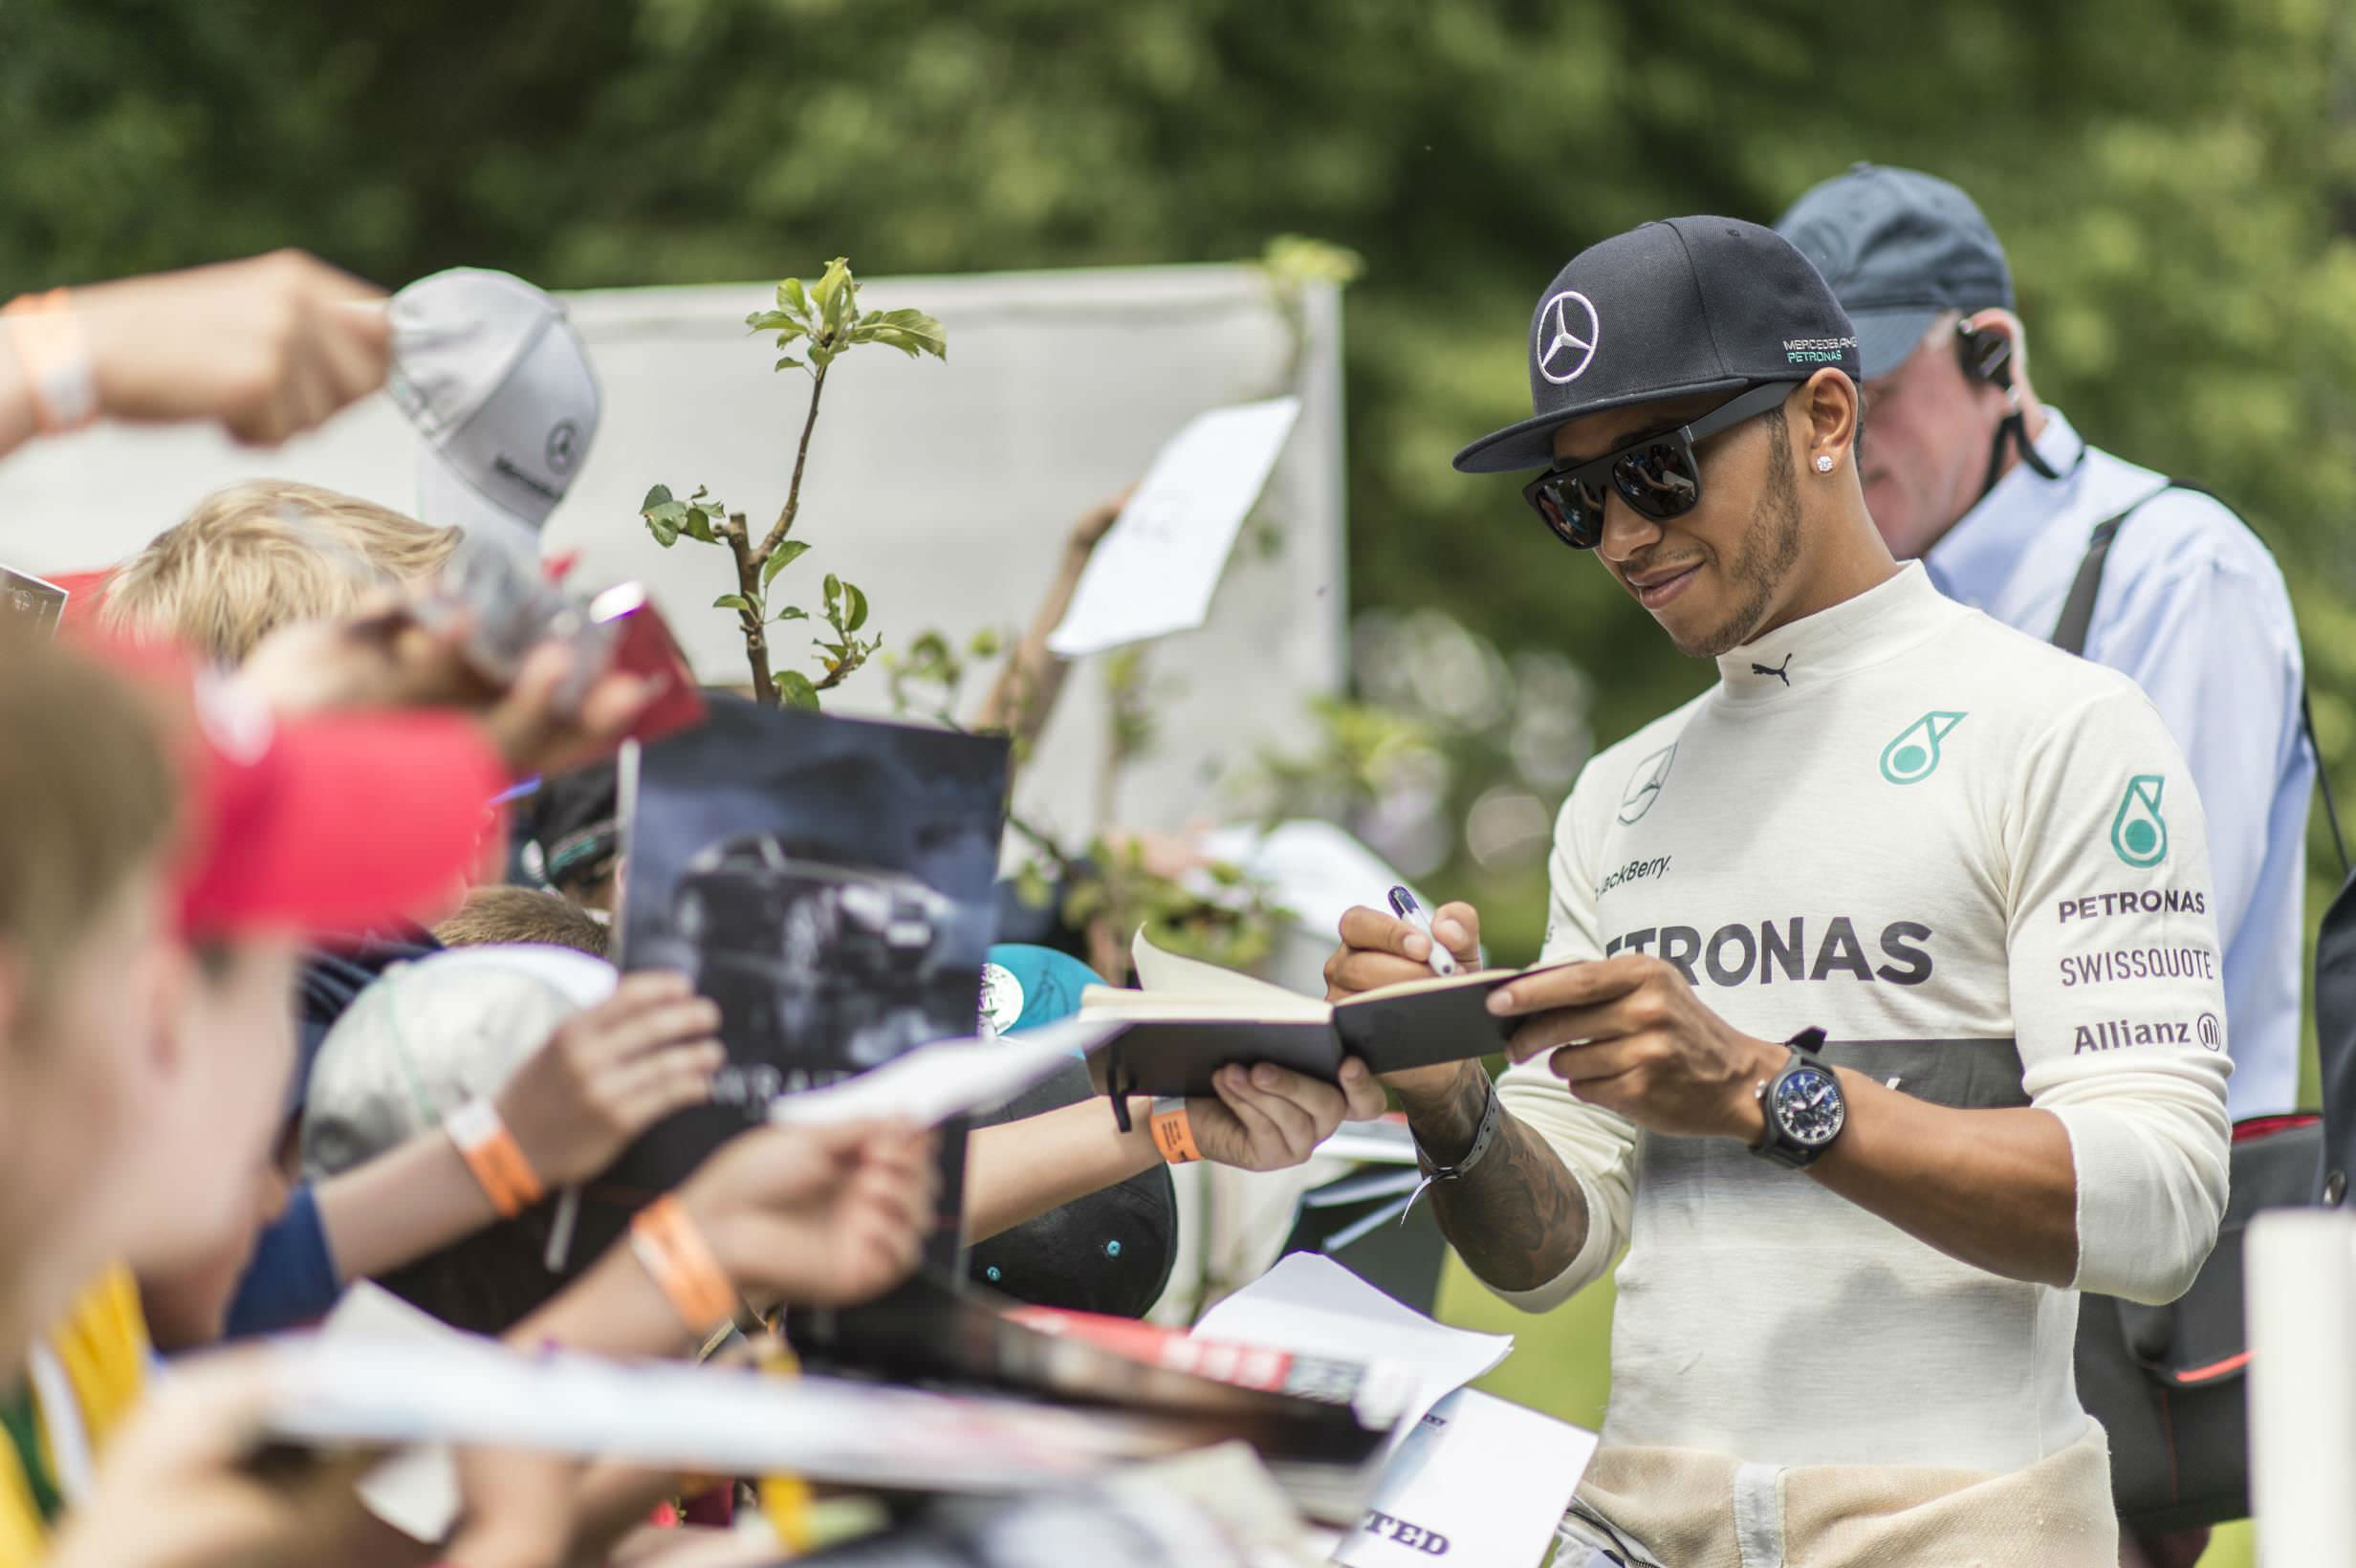 image of lewis hamilton f1 driver signing autographs